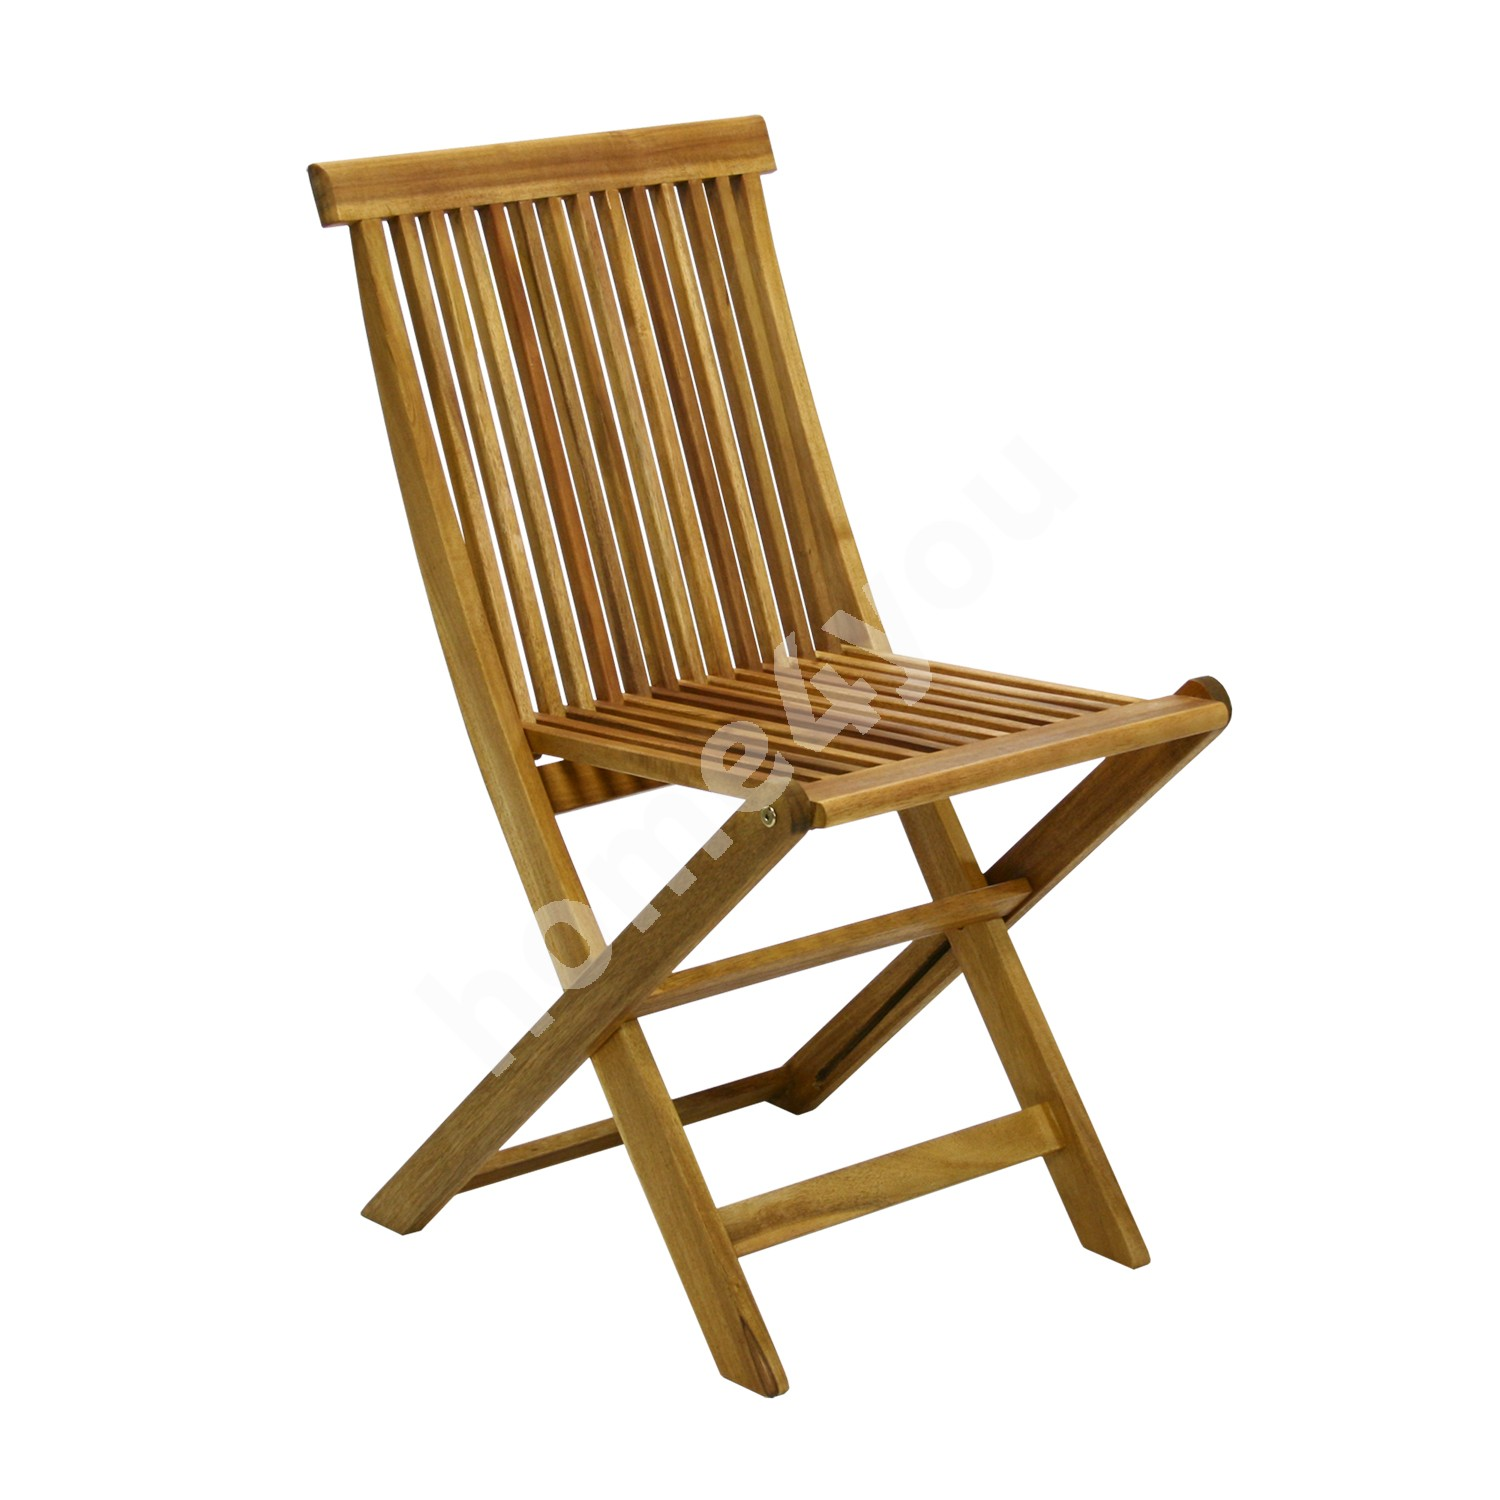 Chair FINLAY 45x57xH86cm, foldable, wood: acacia, finish: oiled